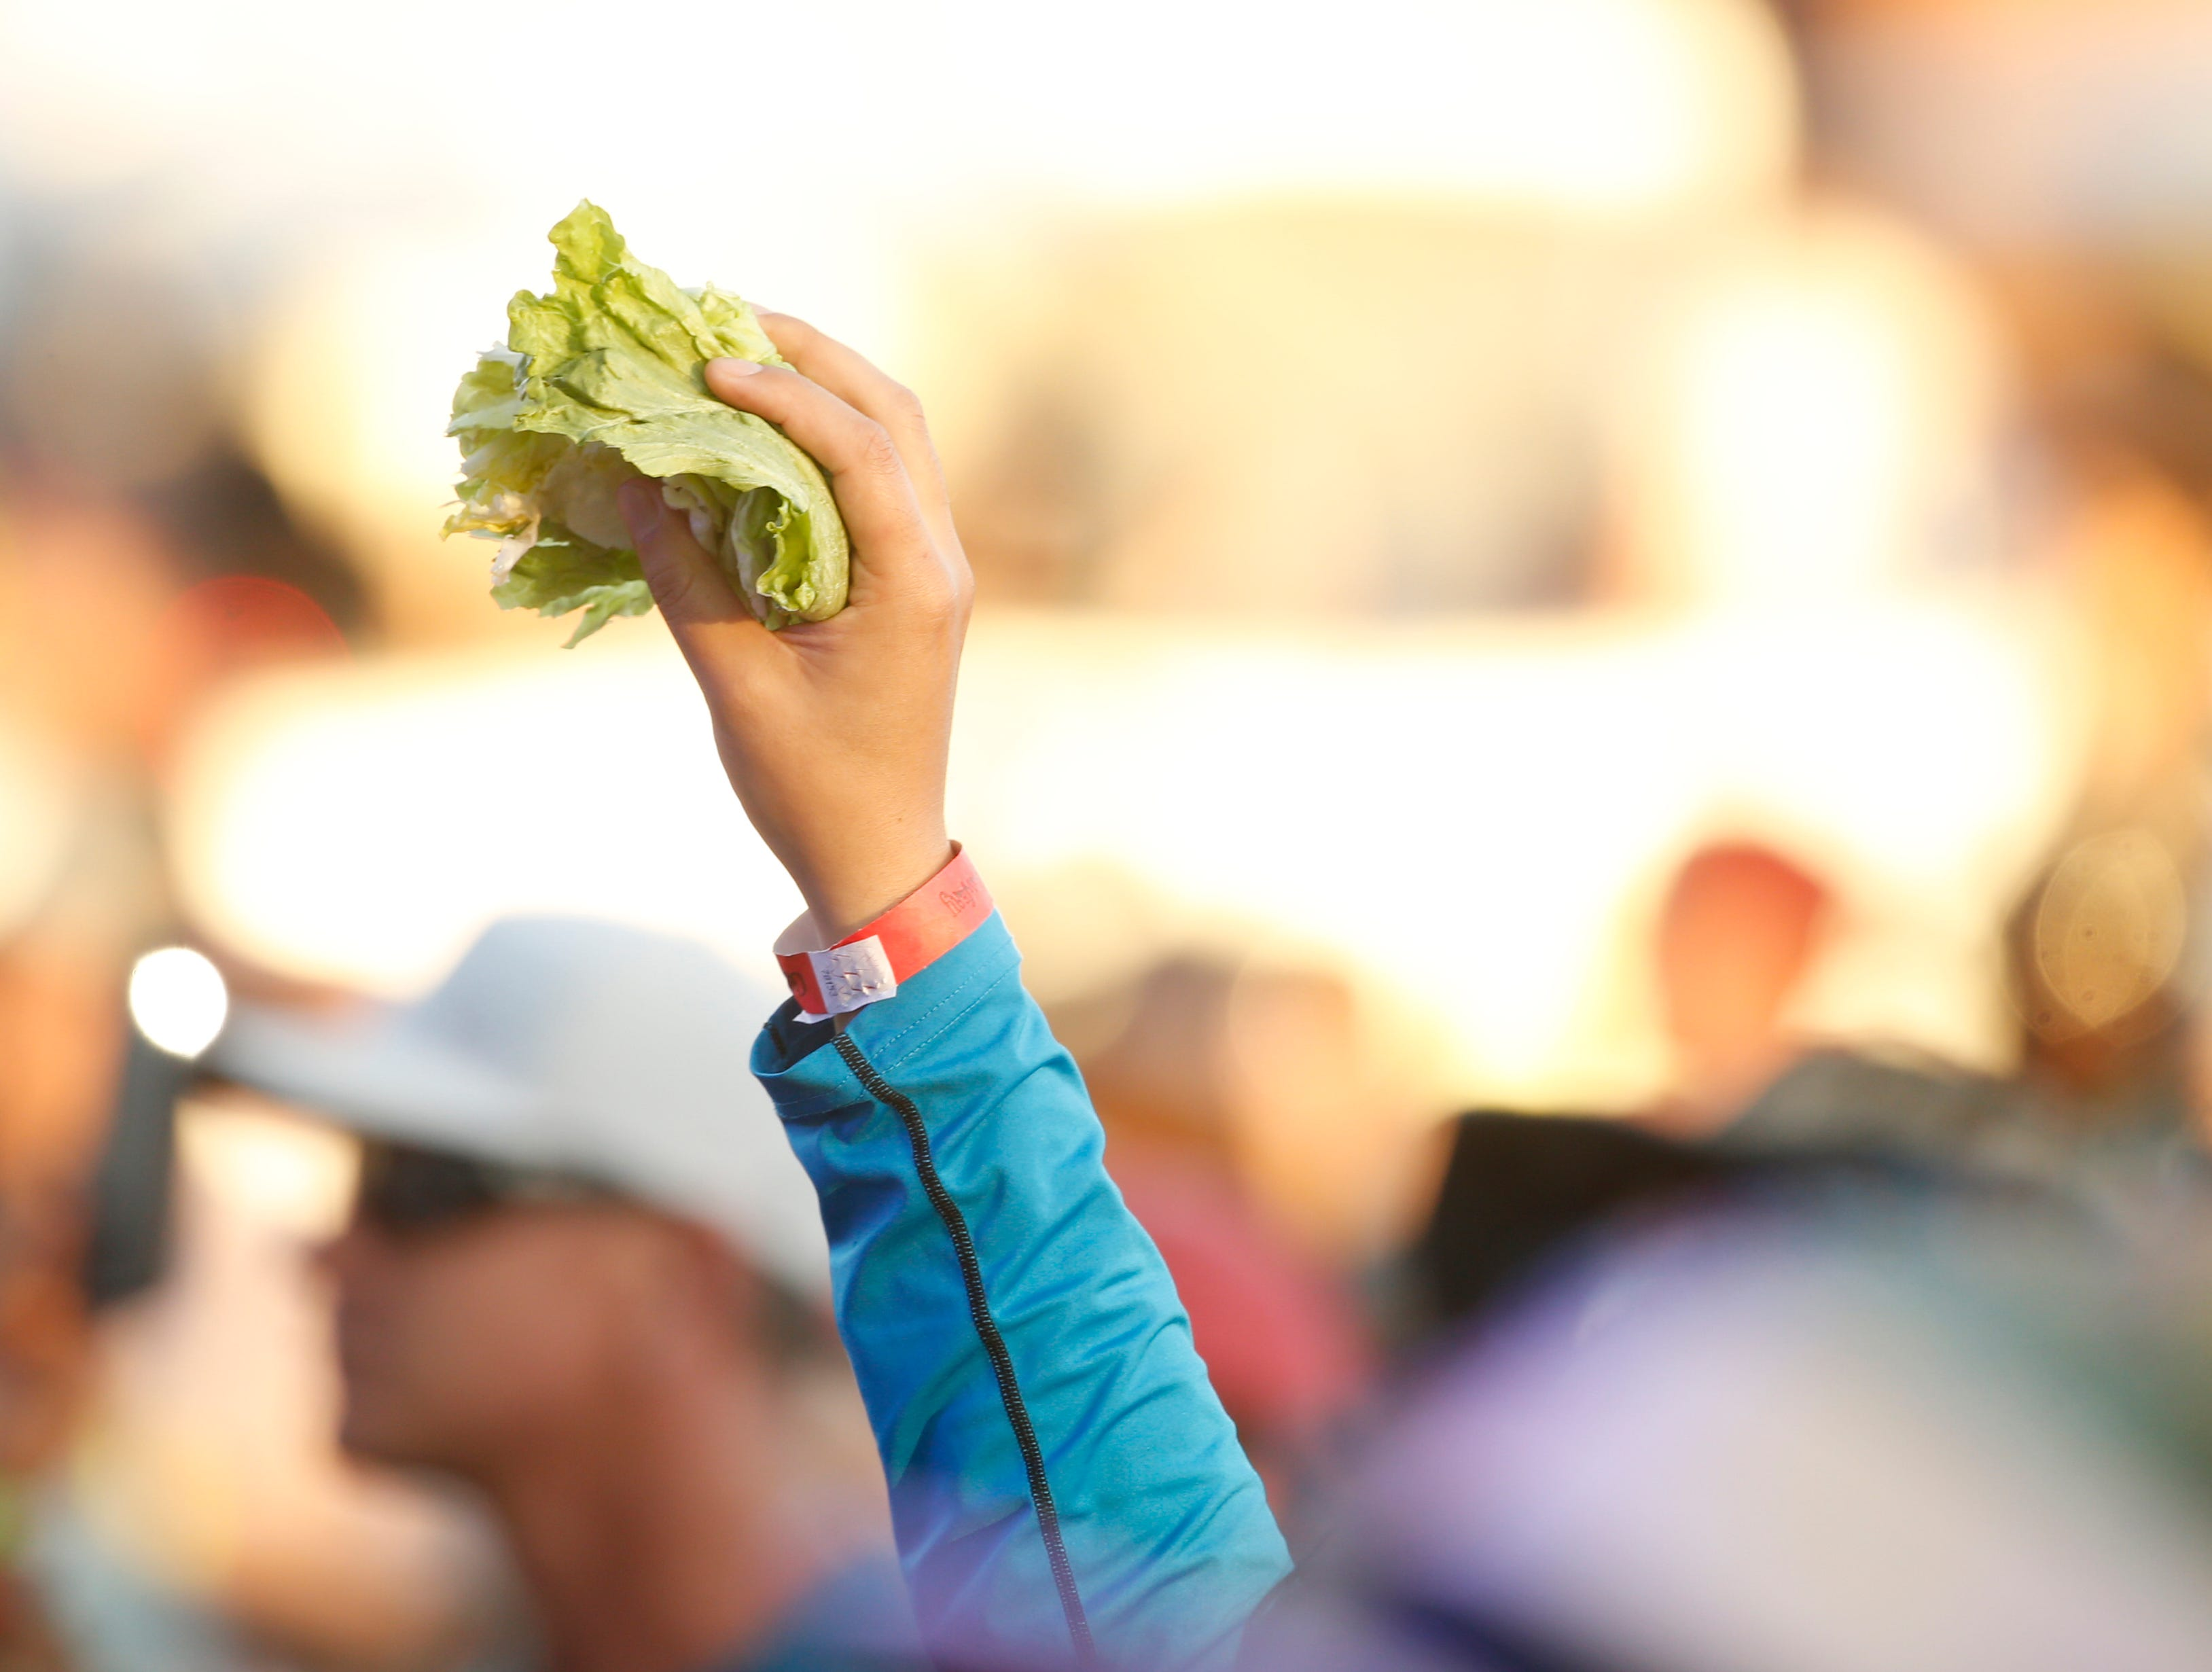 A fan holds some lettuce in the air as Lettuce performs during McDowell Mountain Music Festival in Phoenix on March 3, 2019.